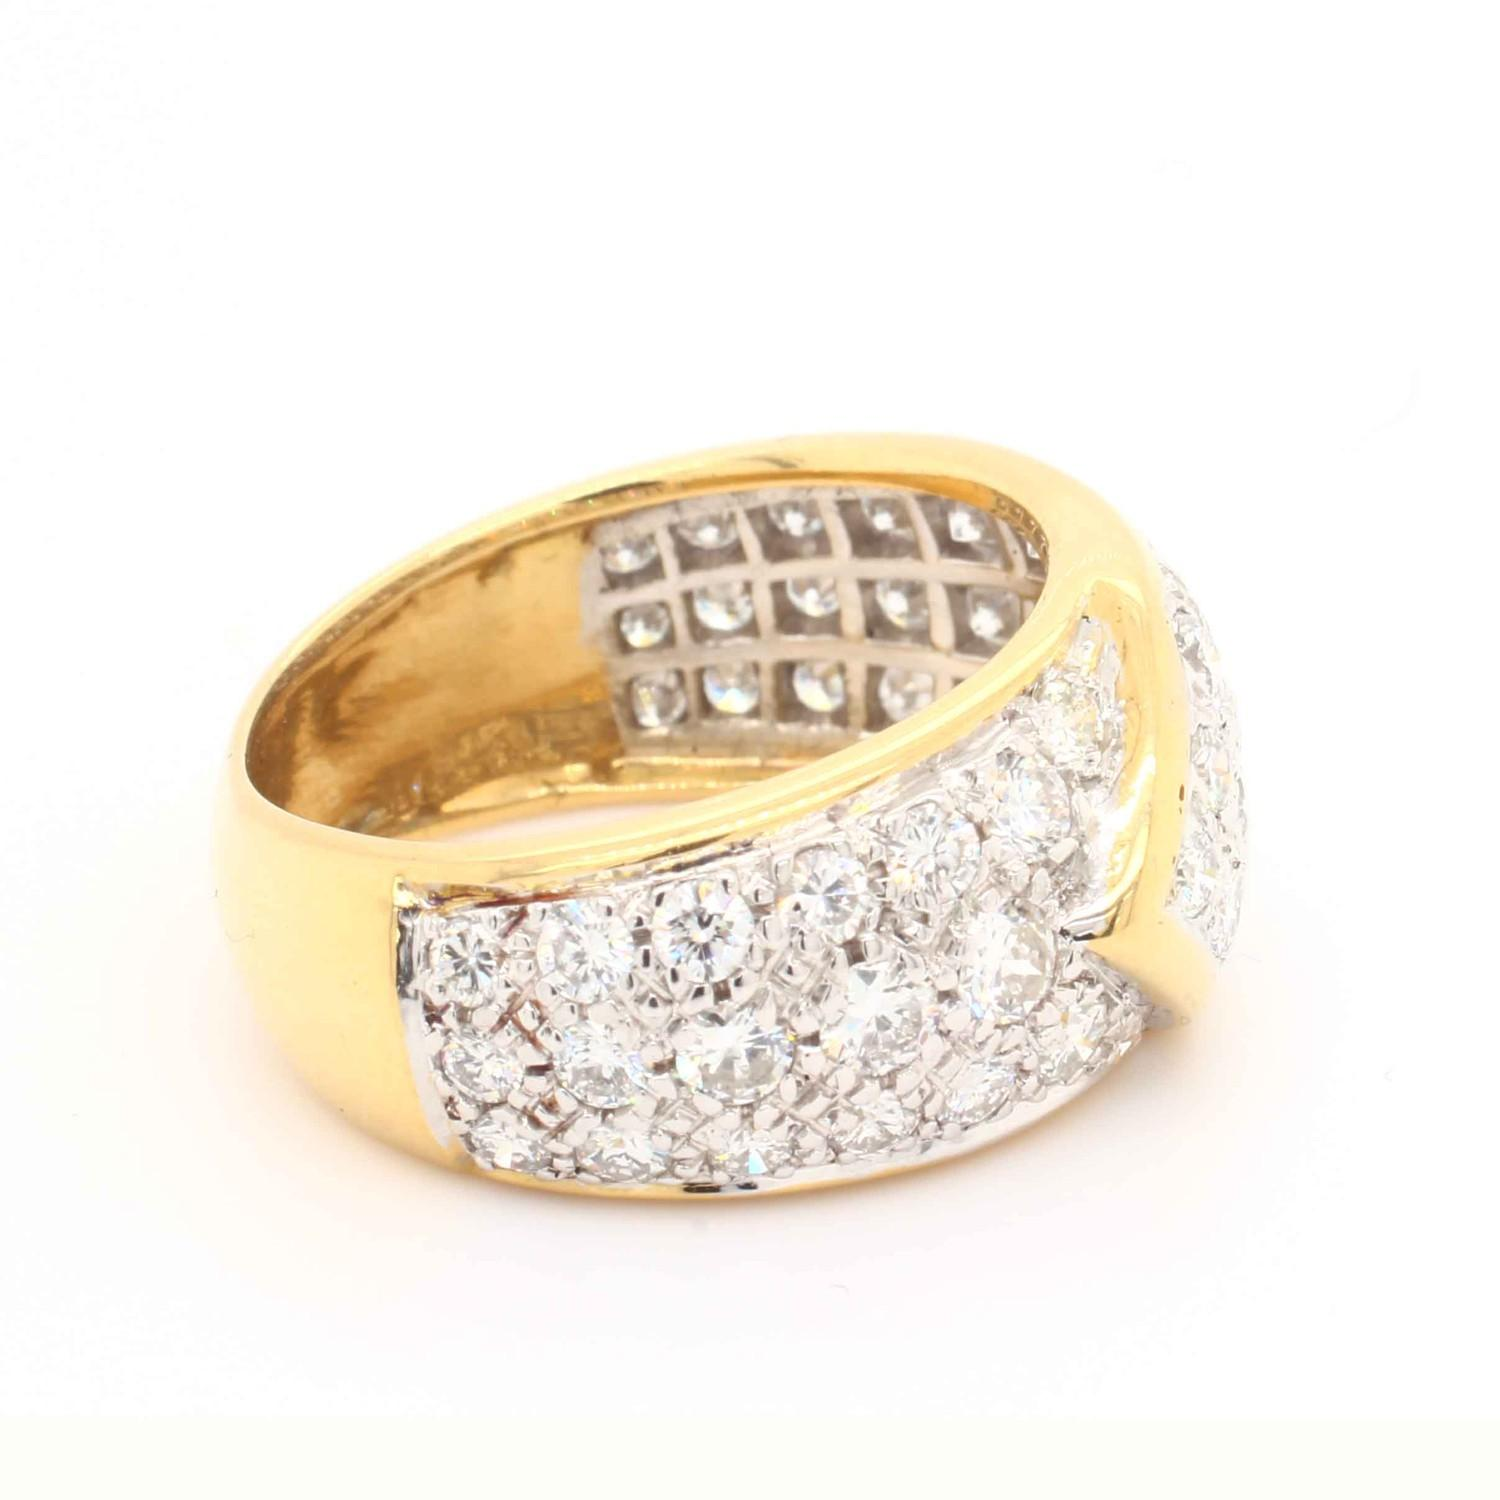 A Graff diamond Ribbon Ring, Contemporary pave set diamond buckle ring mounted in 18ct gold and - Image 3 of 4